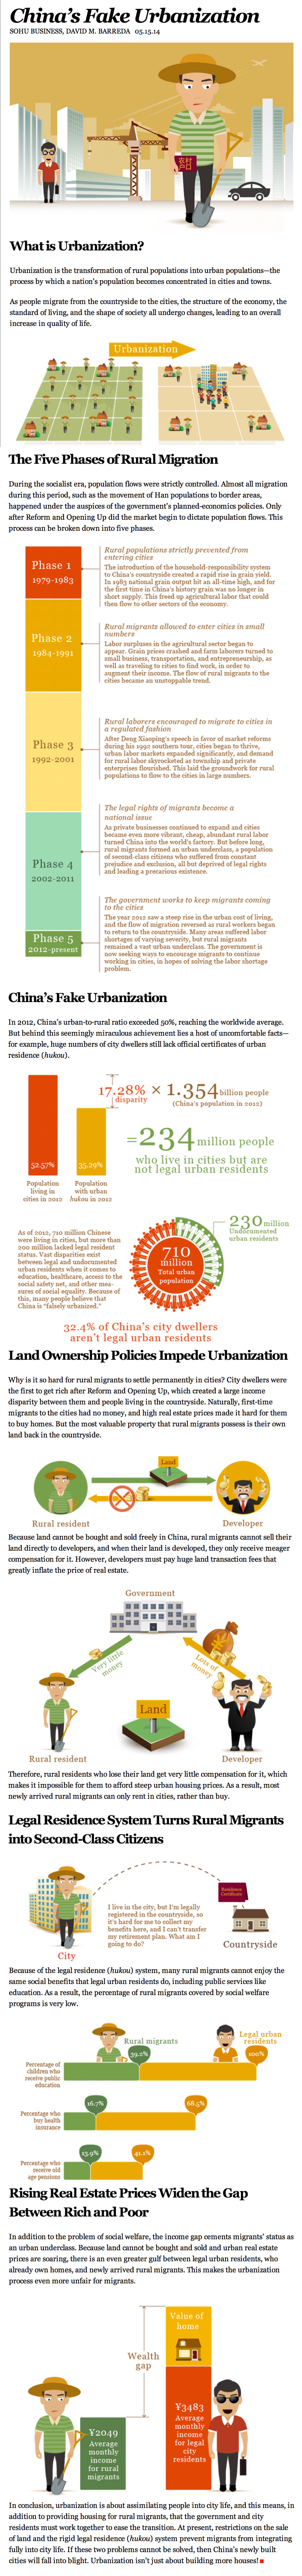 This Infographic About China's Fake Urbanization 002